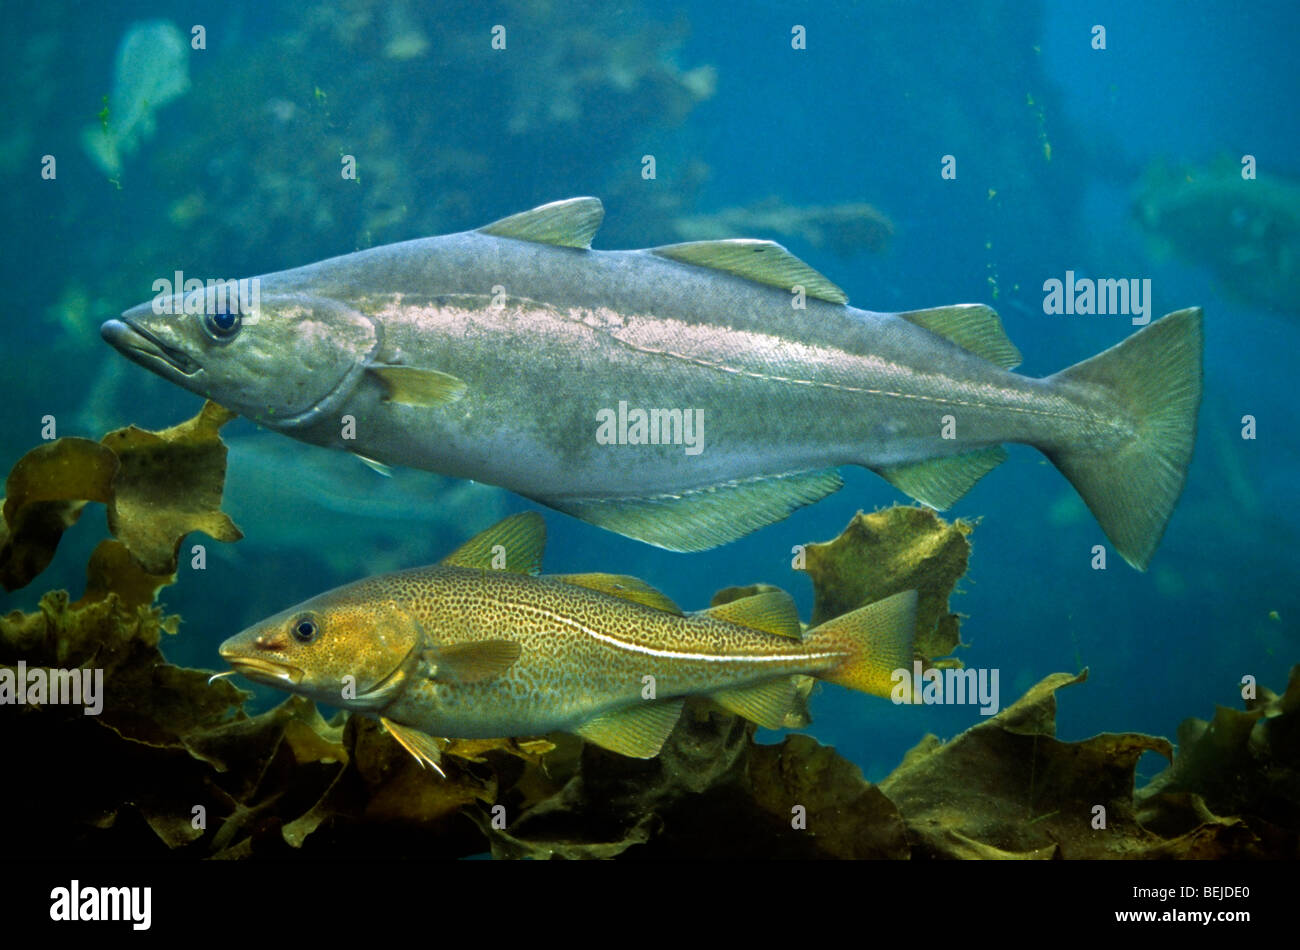 Atlantic cod (Gadus morhua) and European pollock (Pollachius pollachius) swimming underwater, Scandinavia, Norway - Stock Image